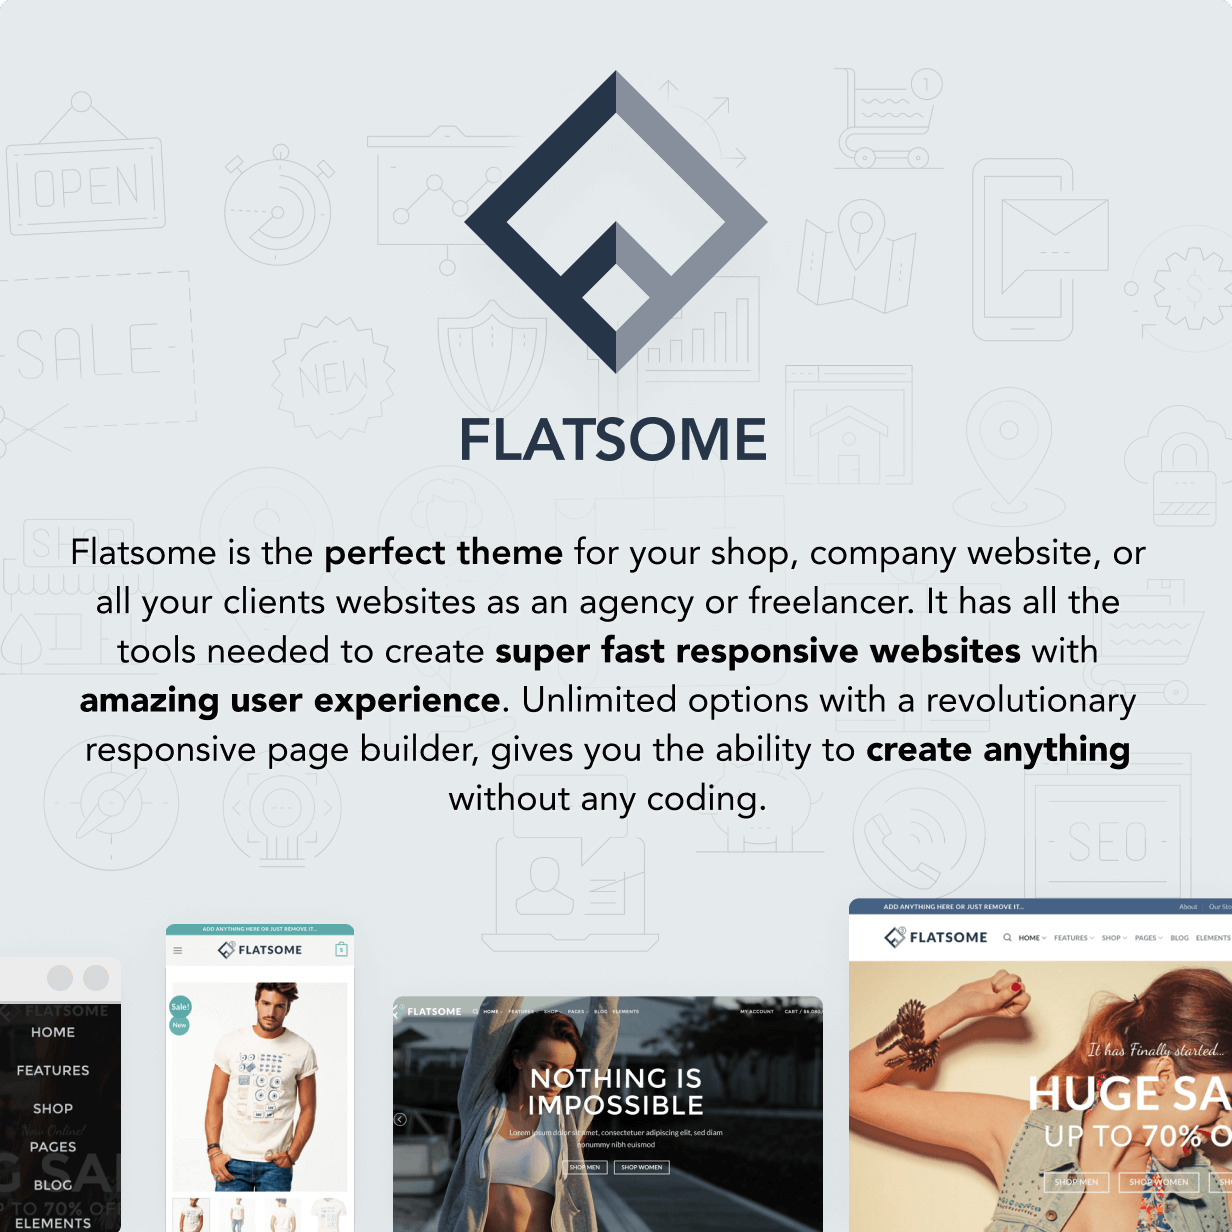 download-flatsome-laster-version-0-png.294